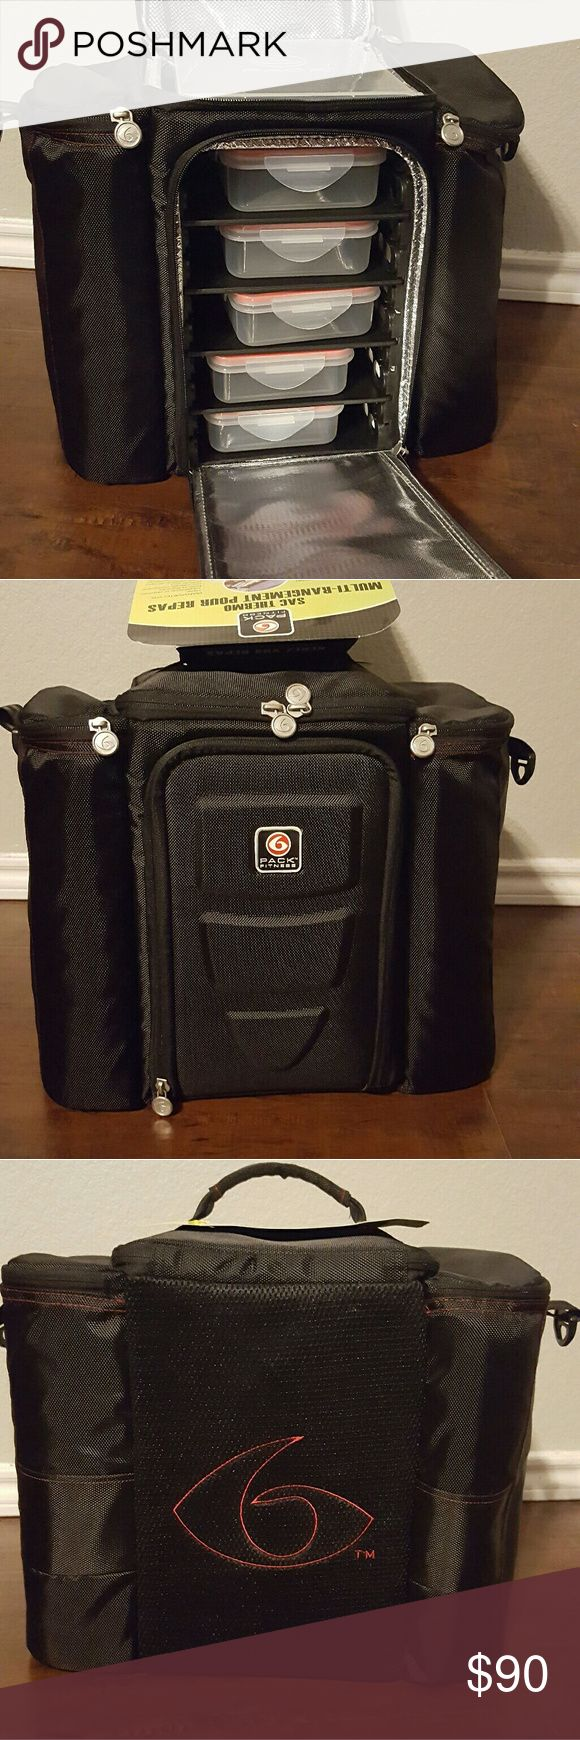 6 Pack Bag  Meal Management System BRAND NEW 6 Pack Bag. Never used. Tags.  All contents included. 6 Pack Bag  Bags Luggage & Travel Bags